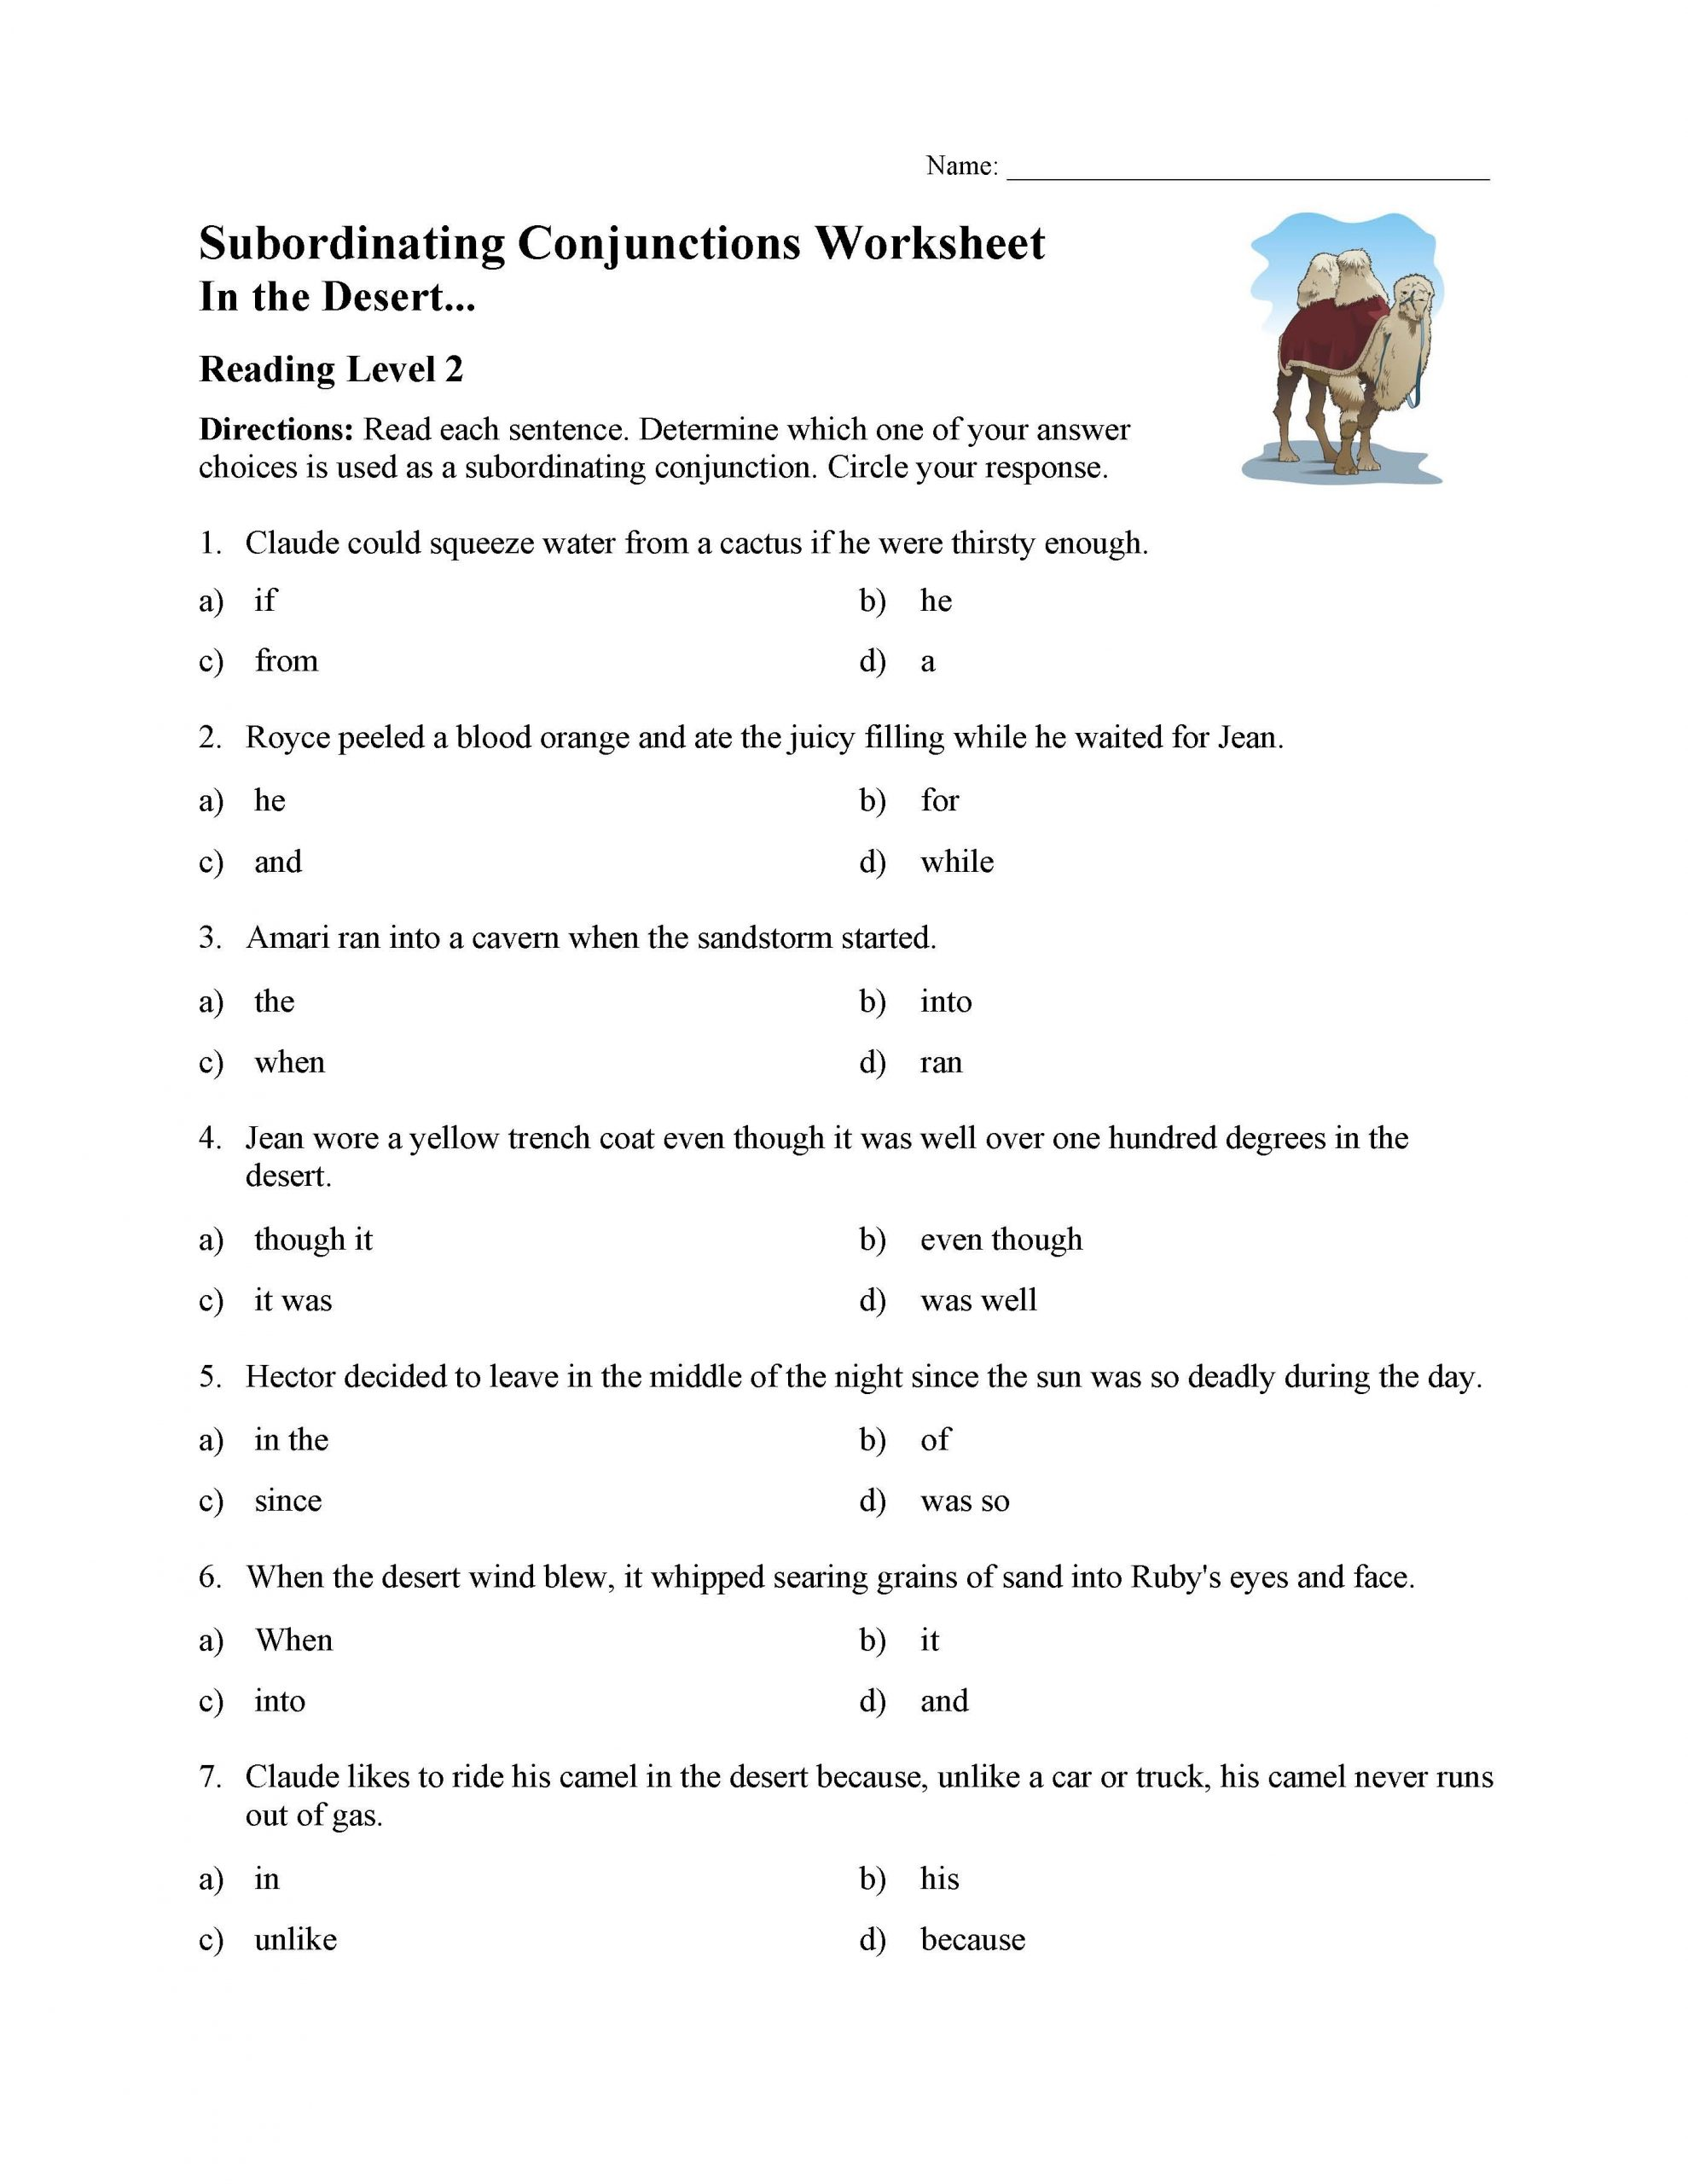 Subordinating Conjunctions Worksheet Reading Level 2